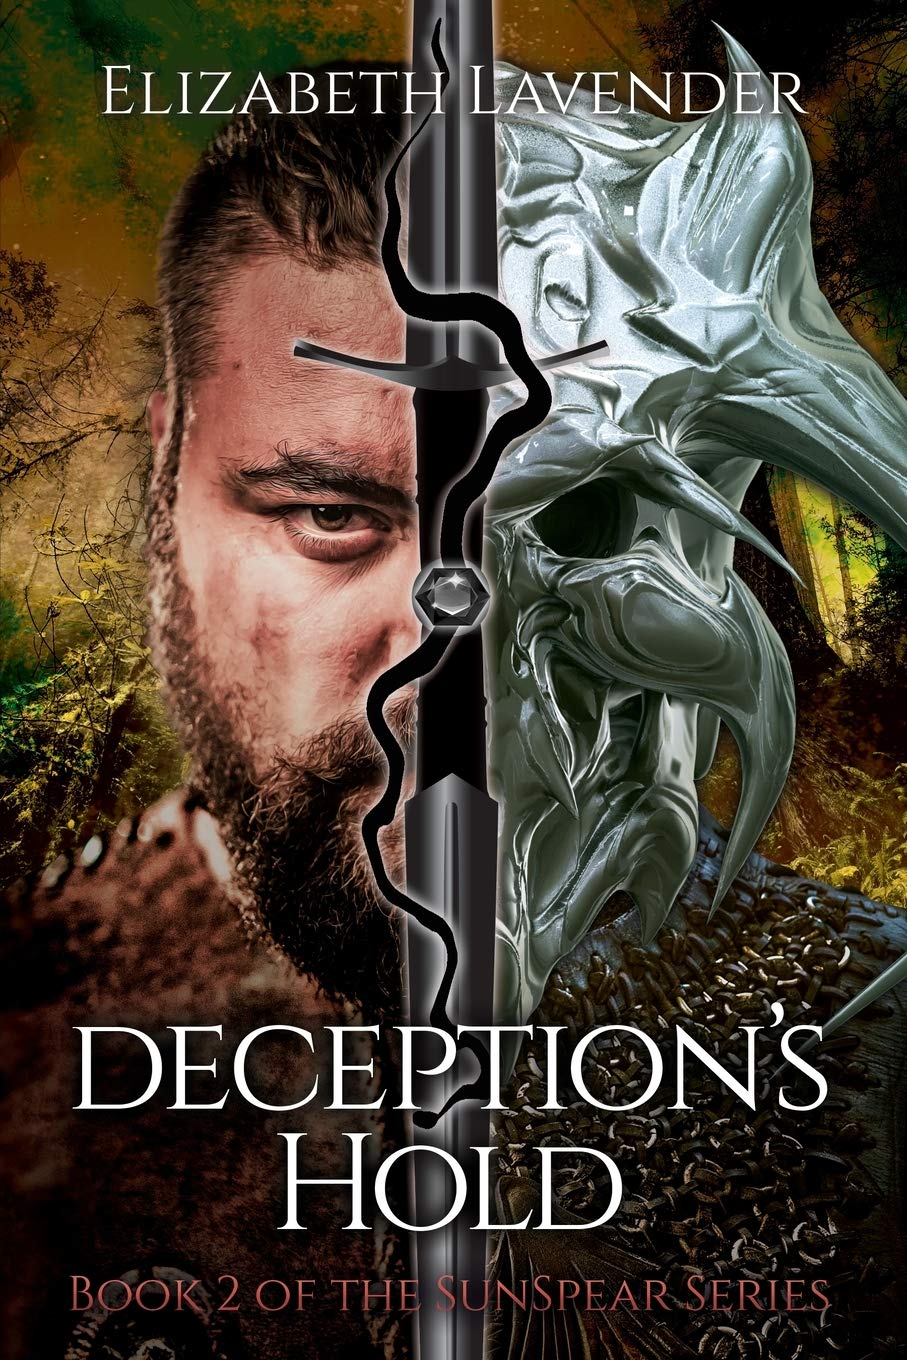 Deception's Hold by Elizabeth Lavender